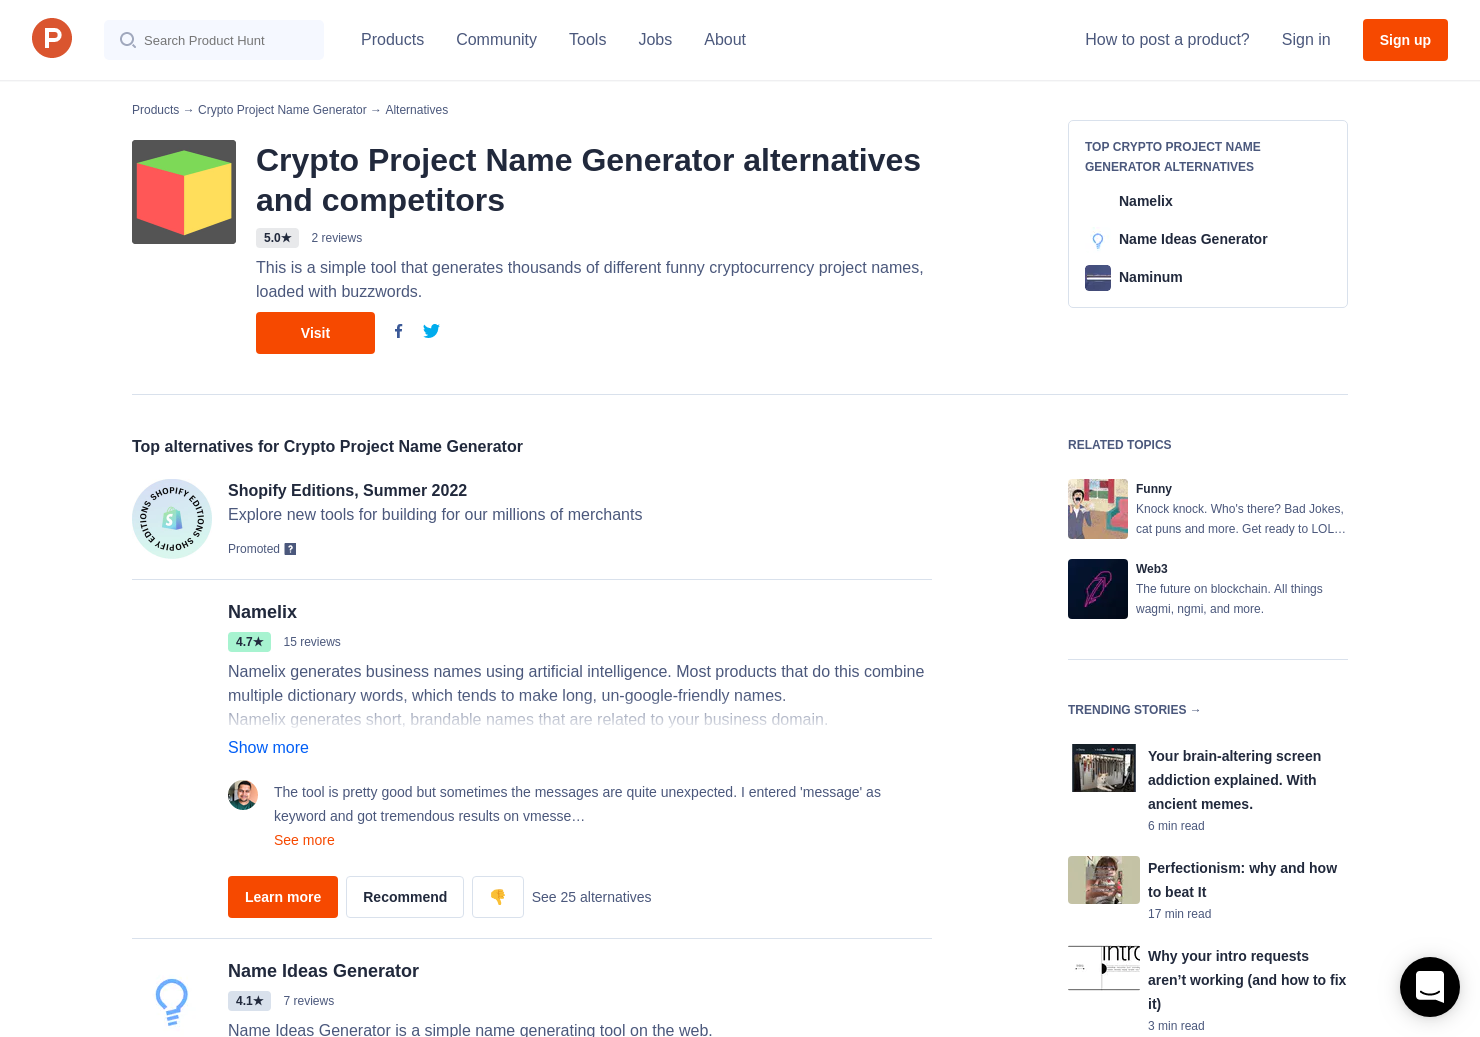 13 Alternatives to Crypto Project Name Generator | Product Hunt